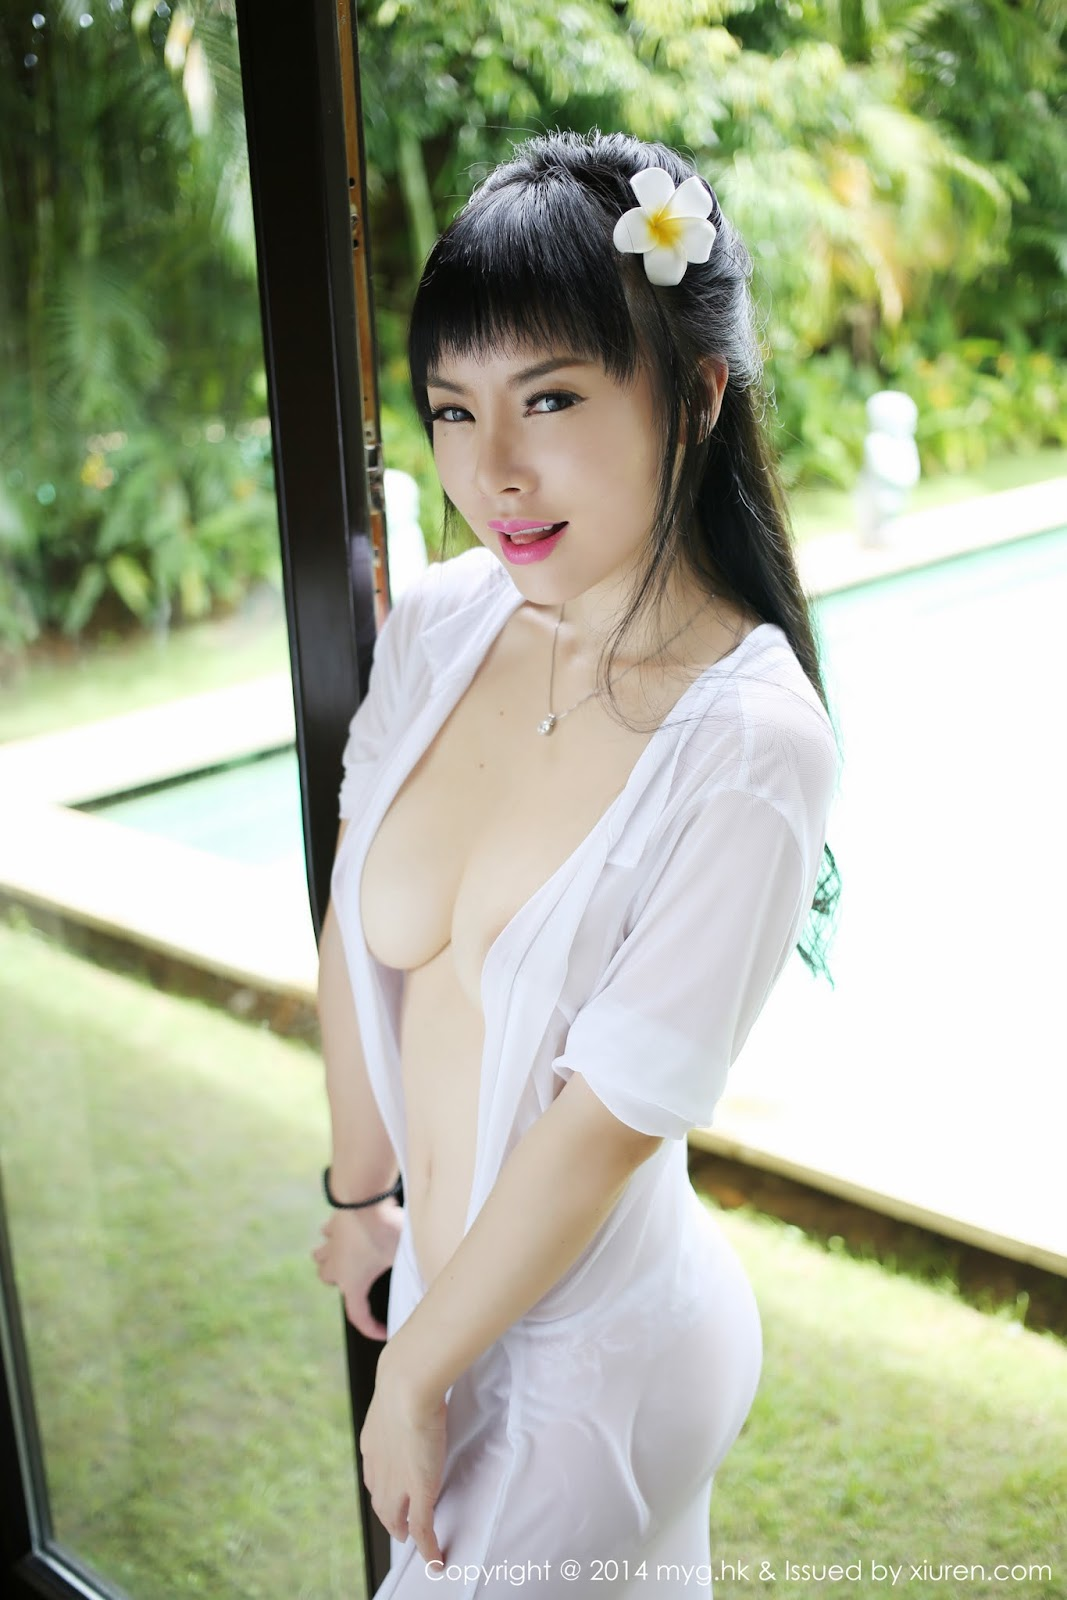 0033 - Sexy Nude Model MYGIRL VOL.49